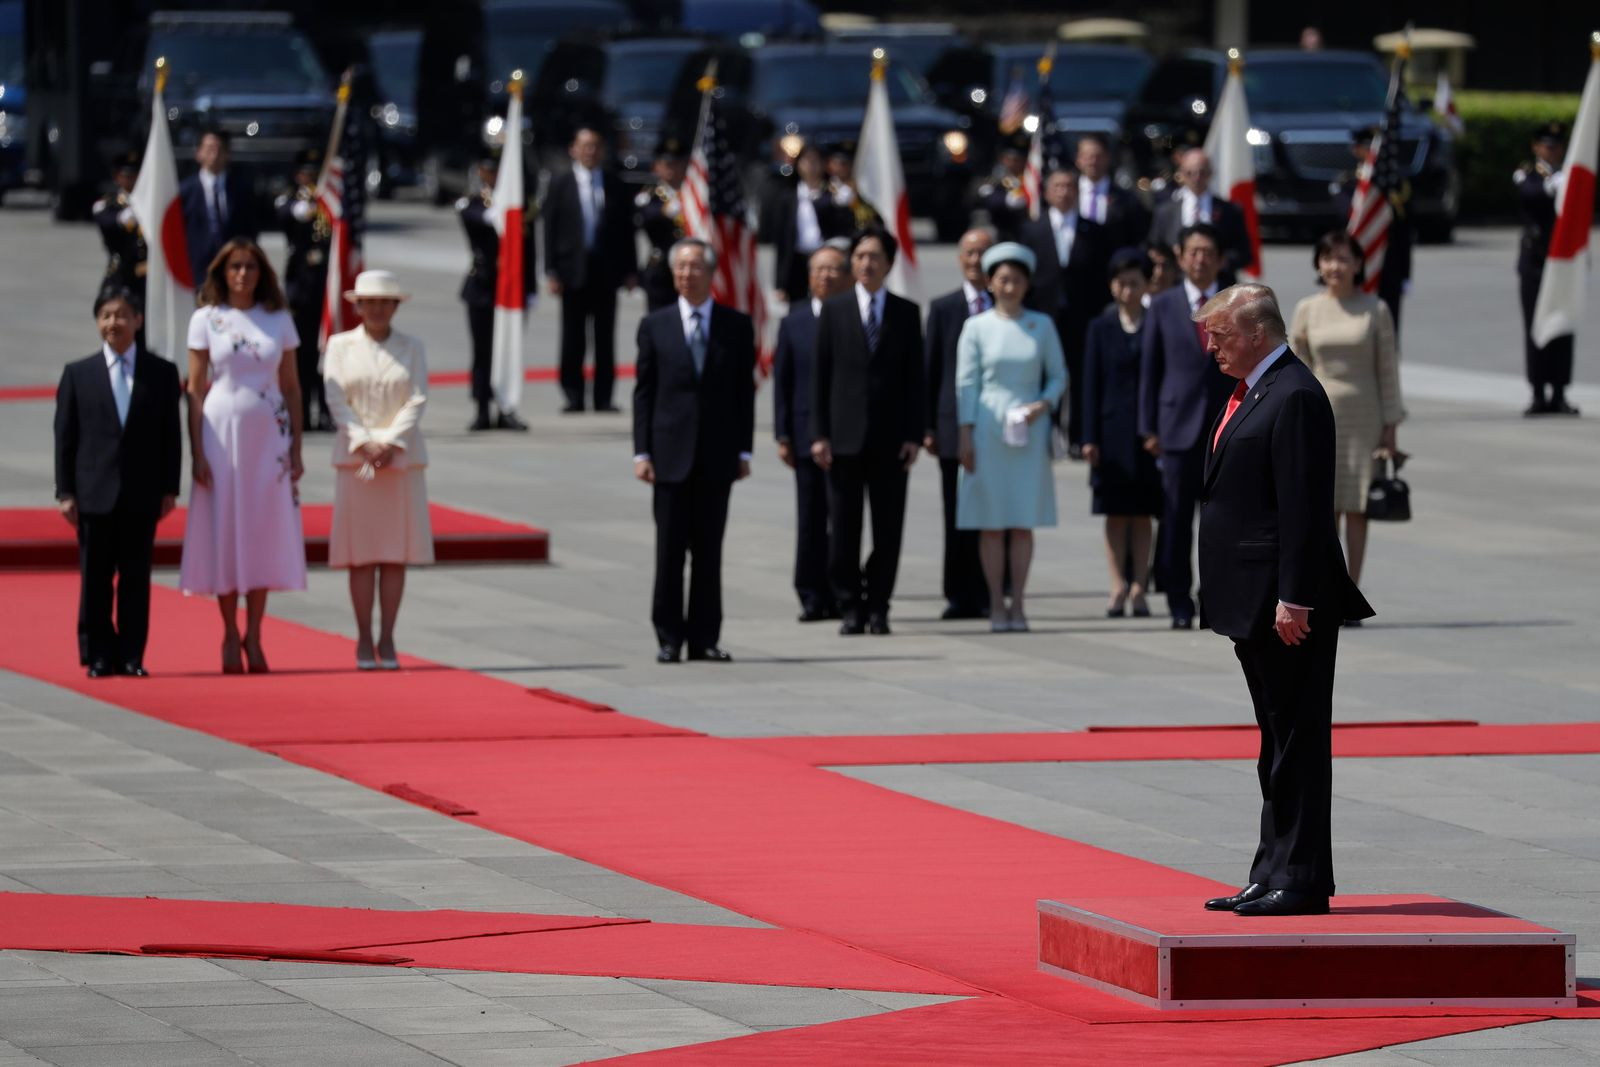 President Donald Trump and first lady Melania Trump participate with Japanese Emperor Naruhito and Japanese Empress Masako during an Imperial Palace welcome ceremony at the Imperial Palace, Monday, May 27, 2019, in Tokyo. (AP Photo/Evan Vucci)